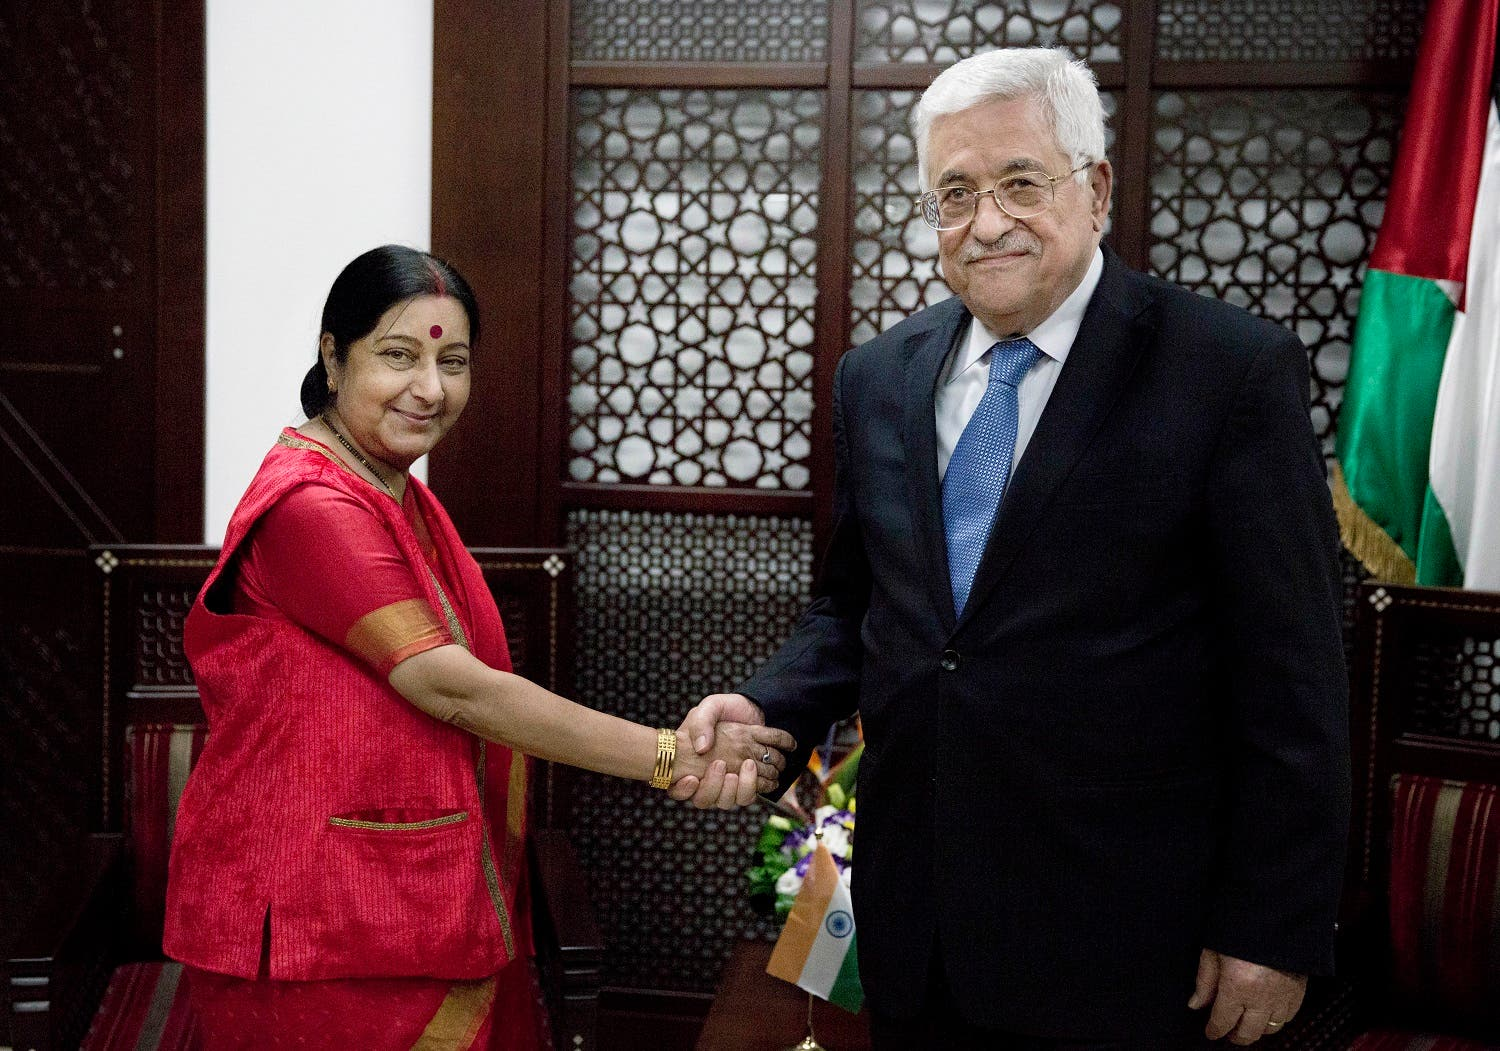 Palestinian President Mahmoud Abbas, right shakes hands with Indian External Affairs Minister Sushma Swaraj in Ramallah, on Jan. 17, 2016. (AP)